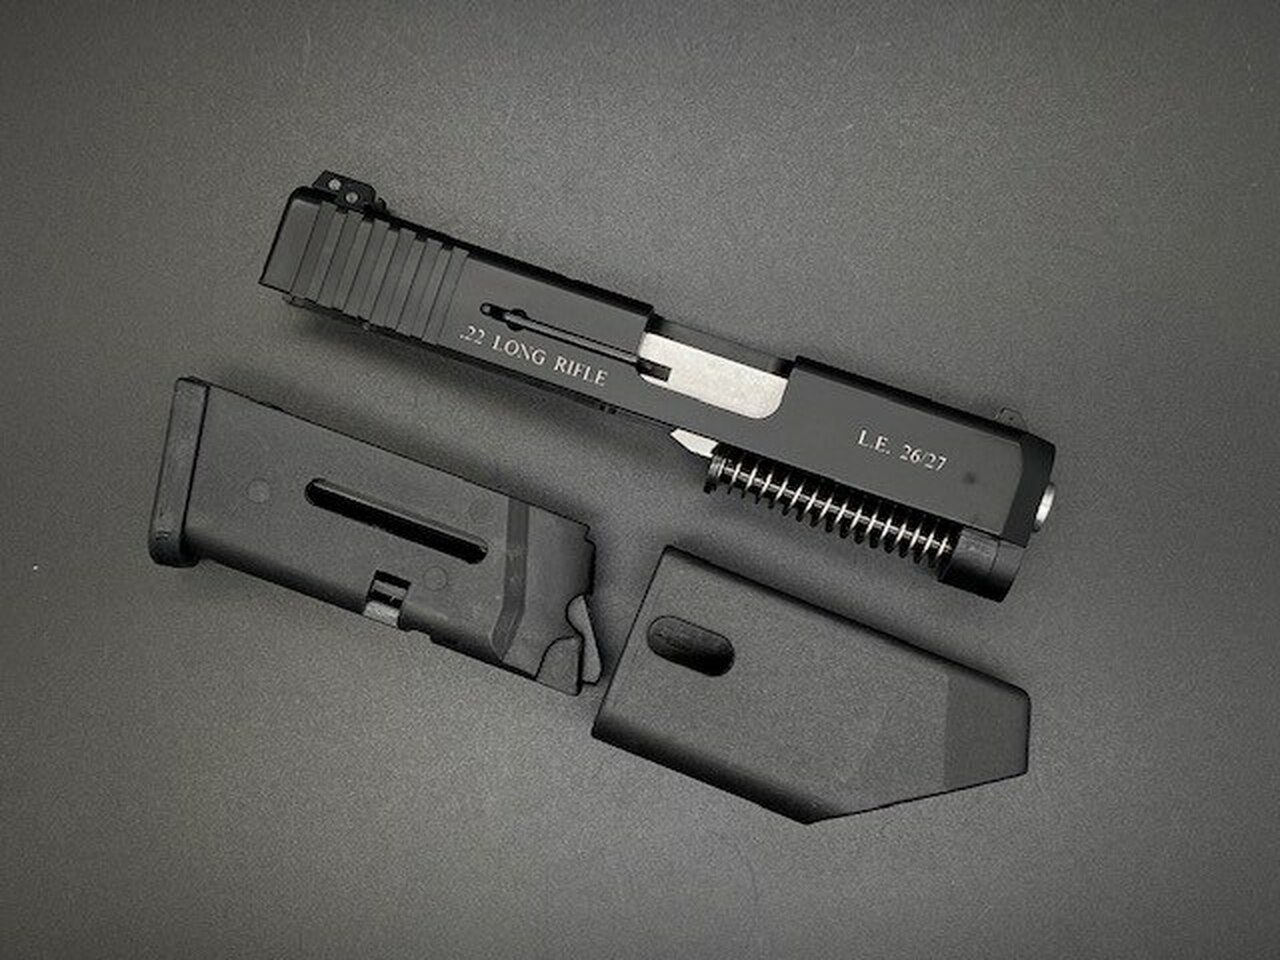 MDX Arms .22 LR (Long Rifle) G26/G27 Compact Build Kit - No Frame